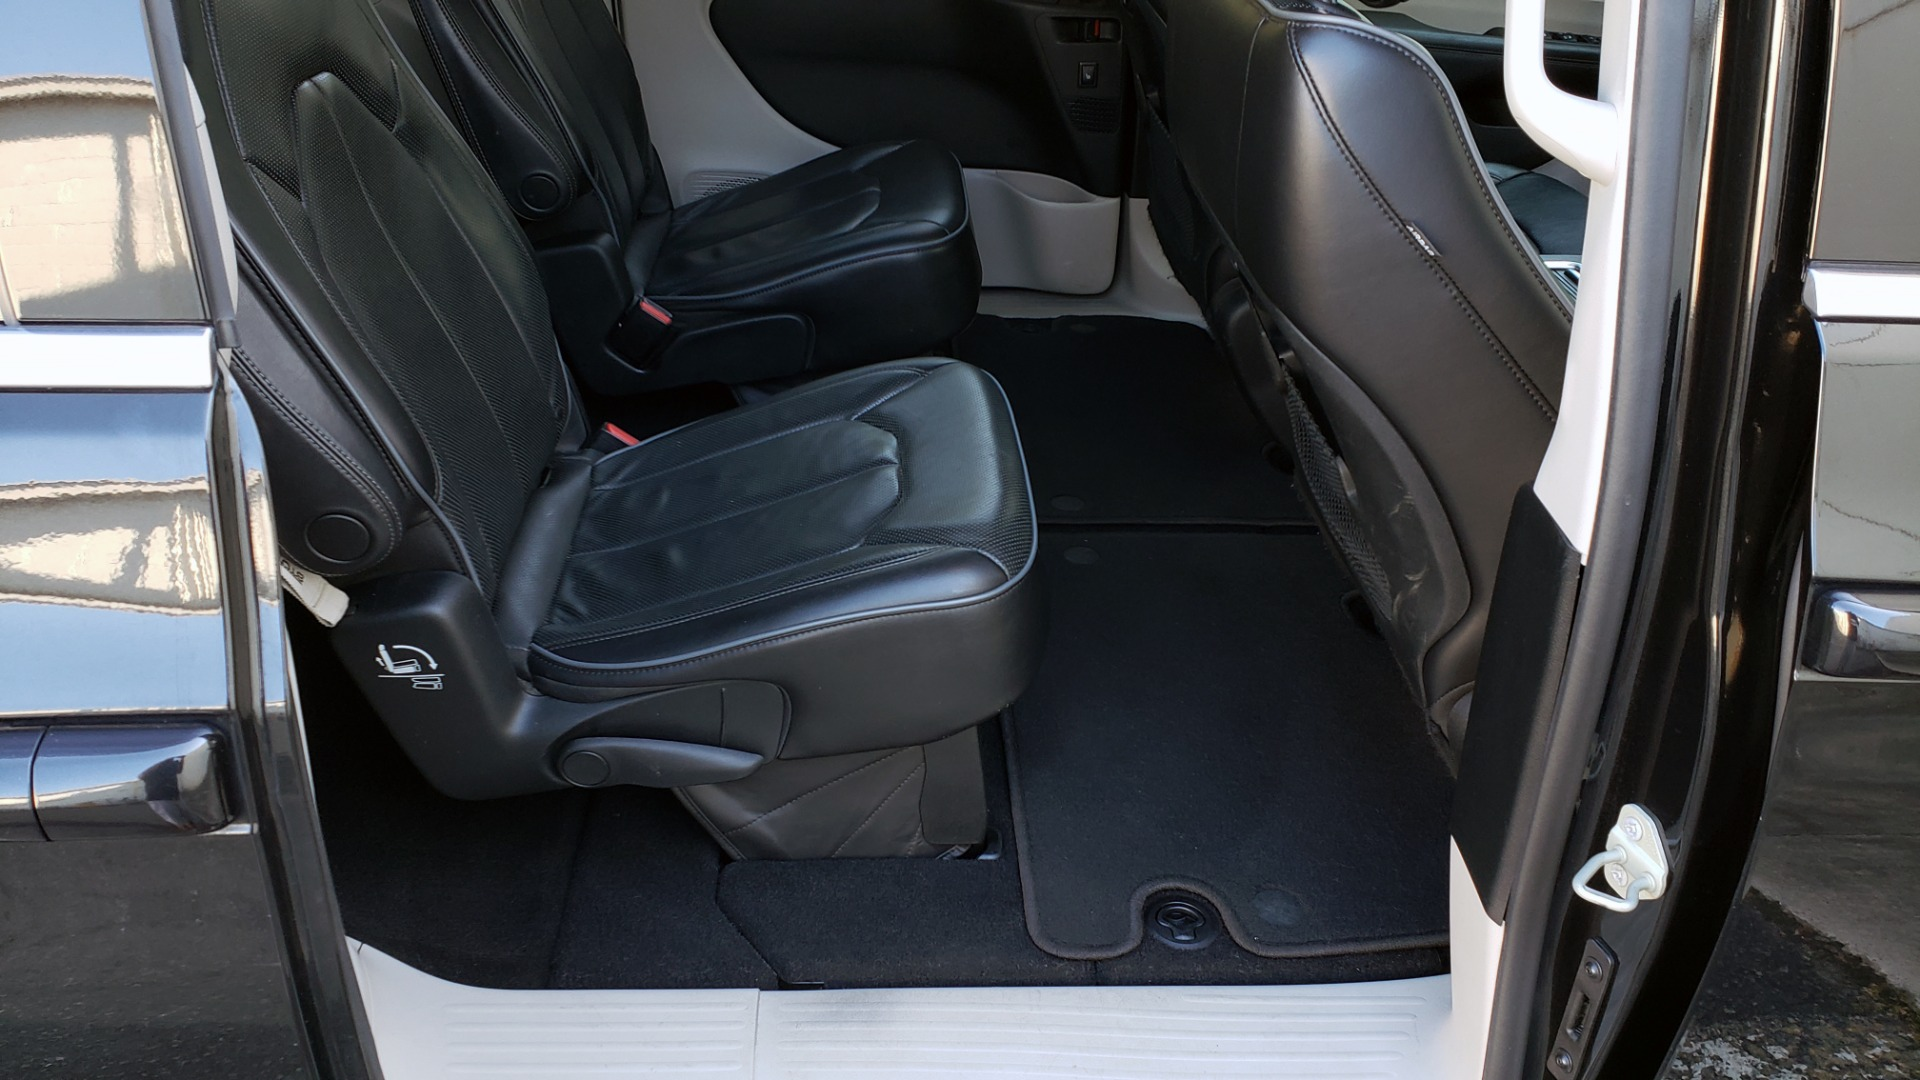 Used 2018 Chrysler PACIFICA LIMITED / 3.6L V6 / NAV / PANO-ROOF / 3-ROWS / REARVIEW for sale $25,995 at Formula Imports in Charlotte NC 28227 74